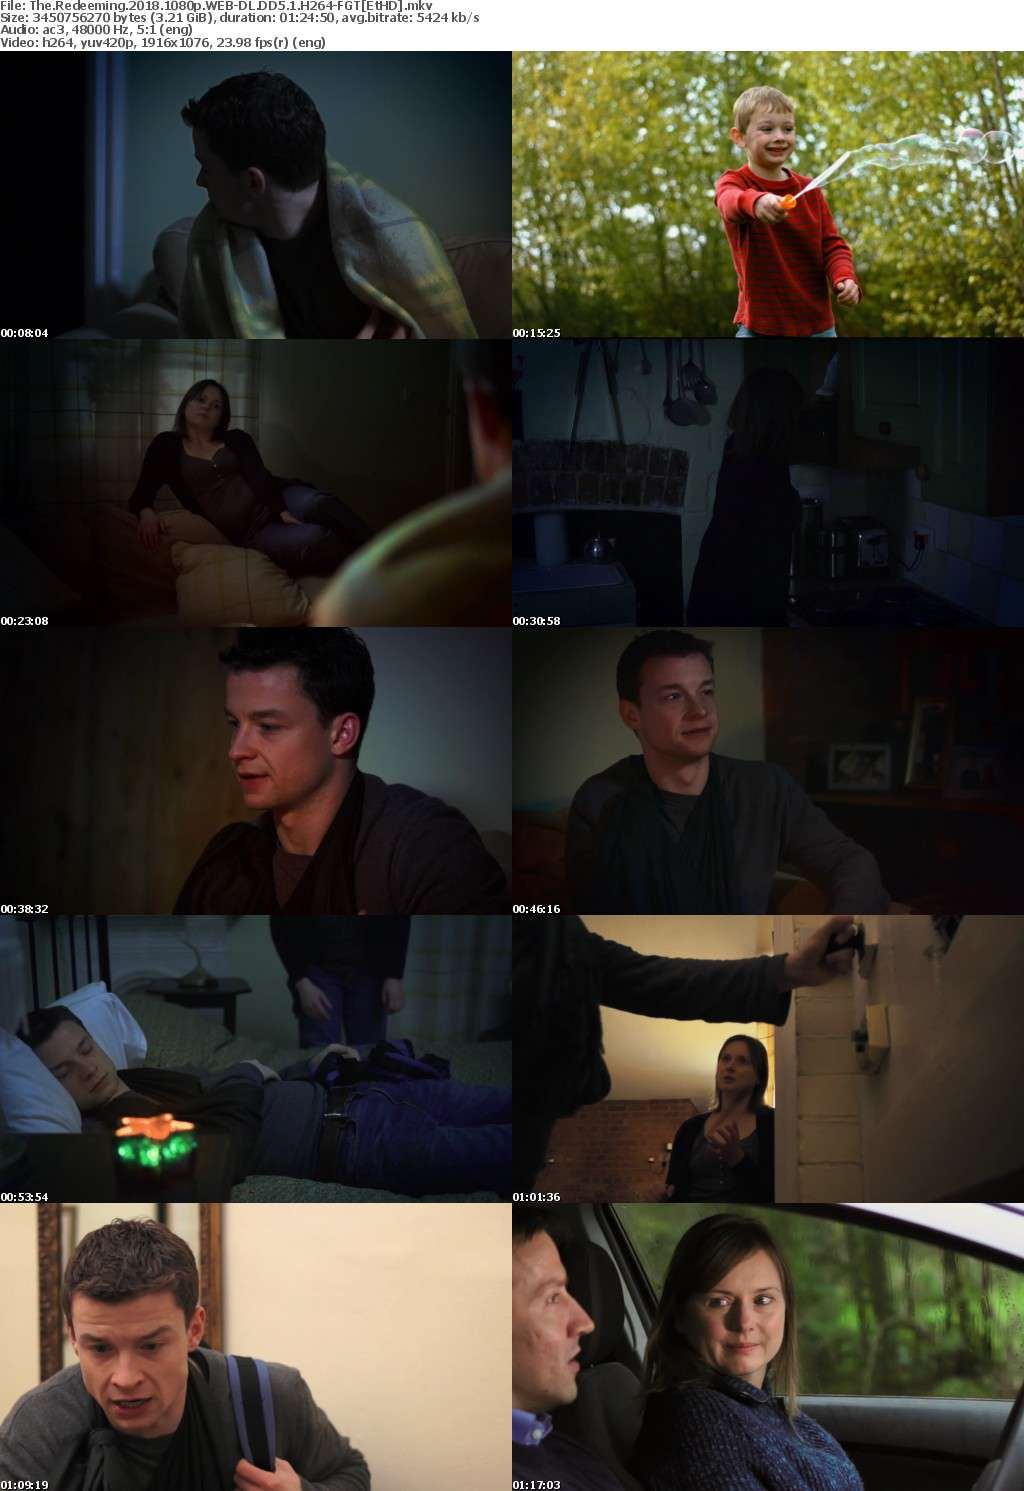 The Redeeming (2018) 1080p WEB-DL DD5.1 H264-FGT